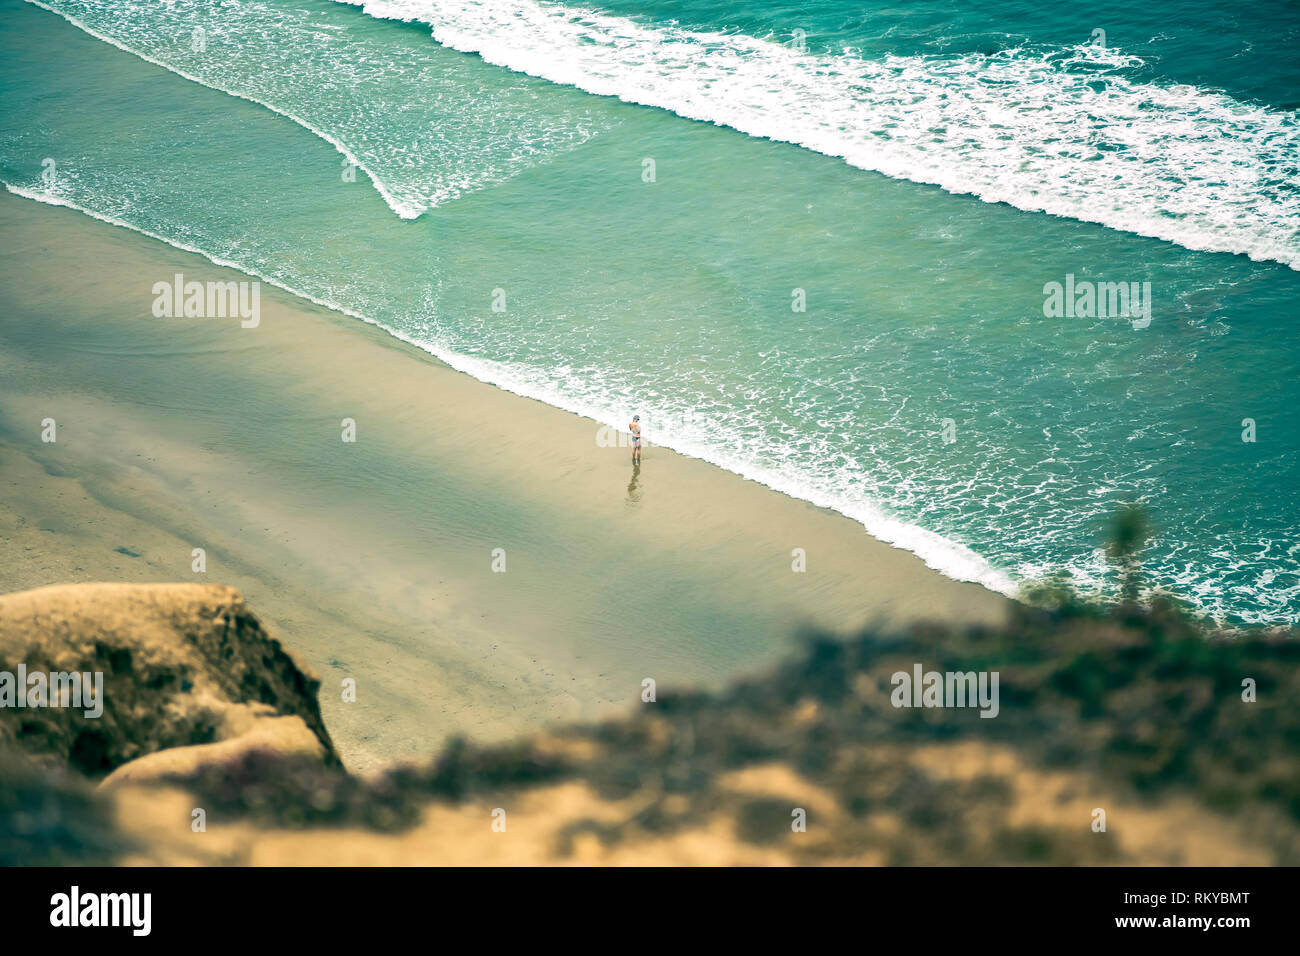 Overhead of girl in bathing suit standing on the beach alone at the edge of the ocean. - Stock Image